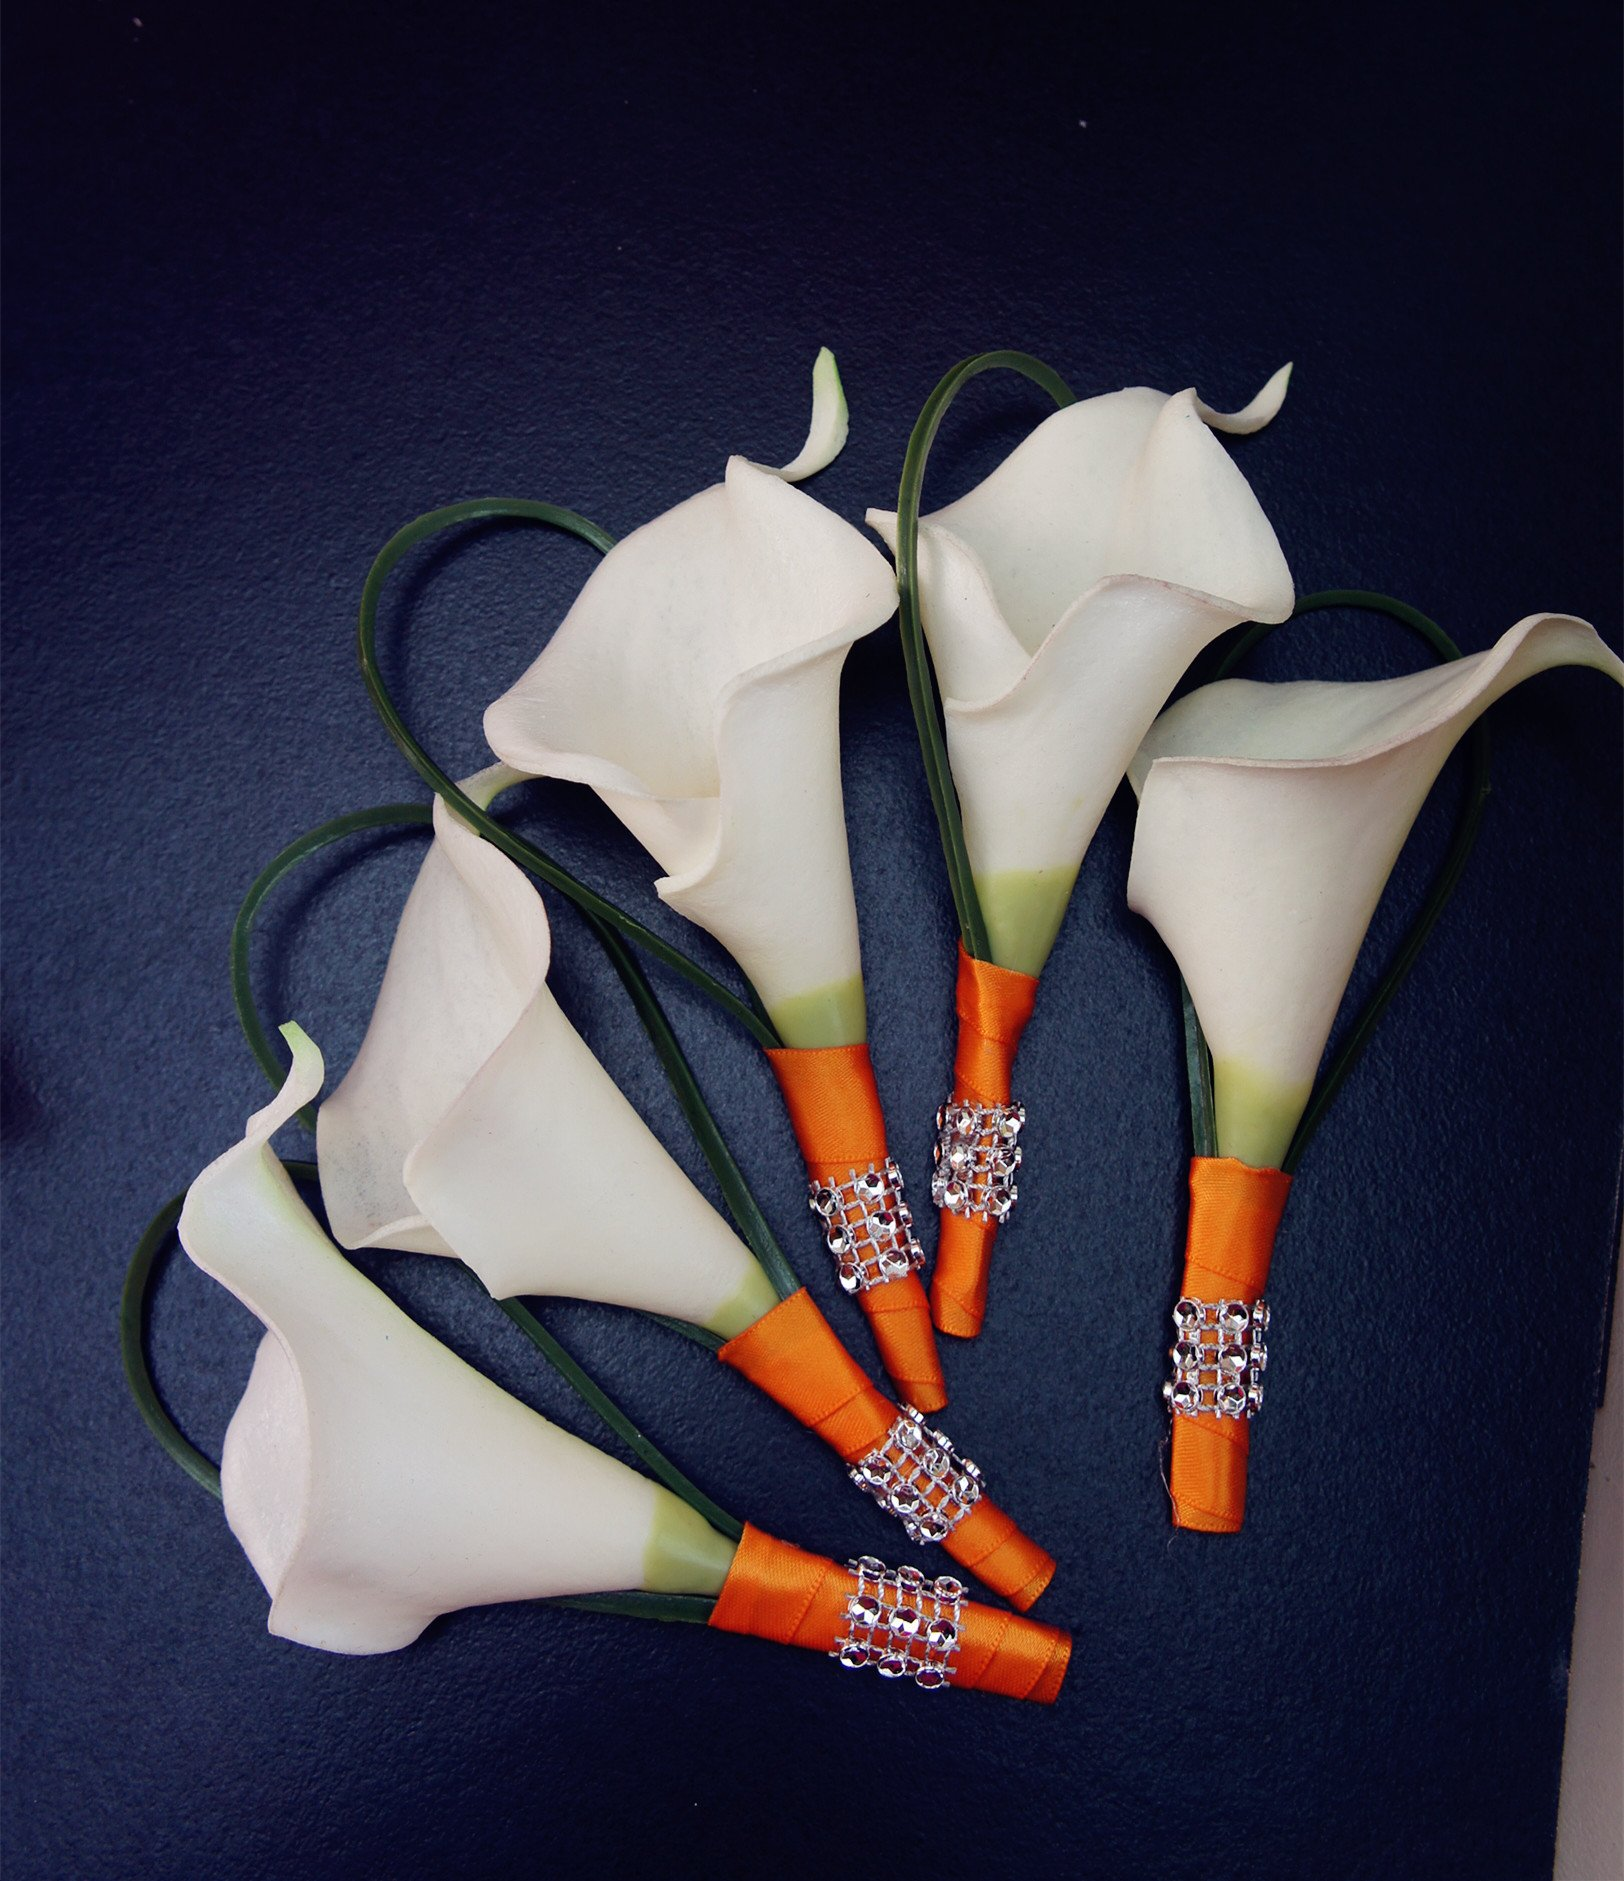 Set of 5 Boutonnieres - White Calla Lily Orange Ribbon by Angel Isabella